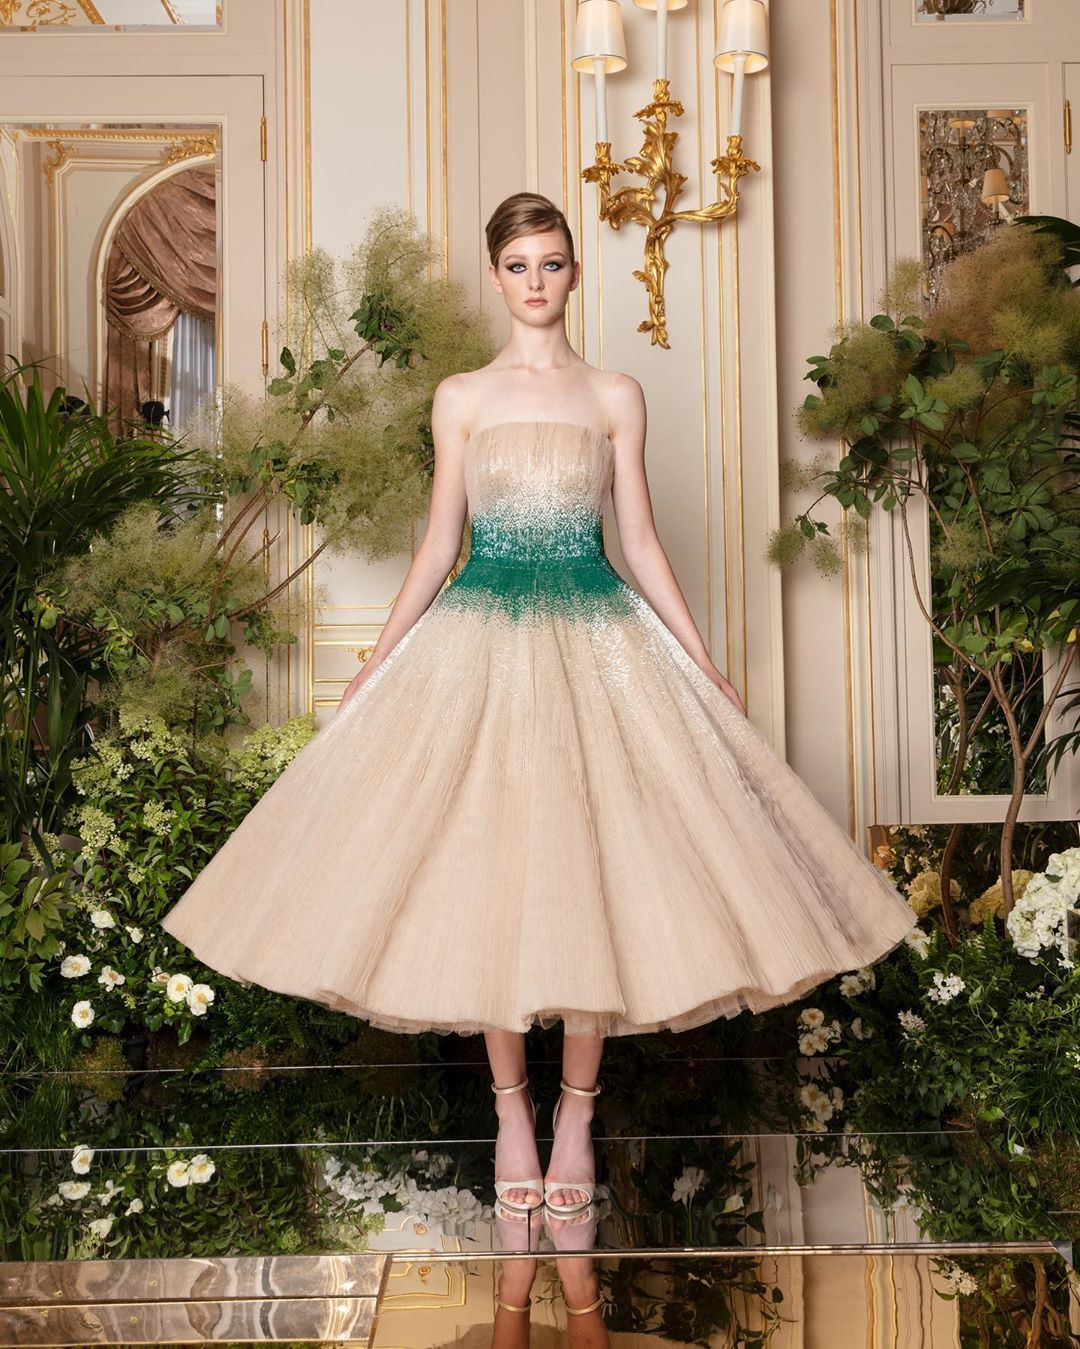 Rami Al Ali Official On Instagram Rami Al Ali Haute Couture Autumn Winter 2019 2020 Inspired By The Fashion Scene Of The Cafe With Images Dresses Rami Al Ali Fashion